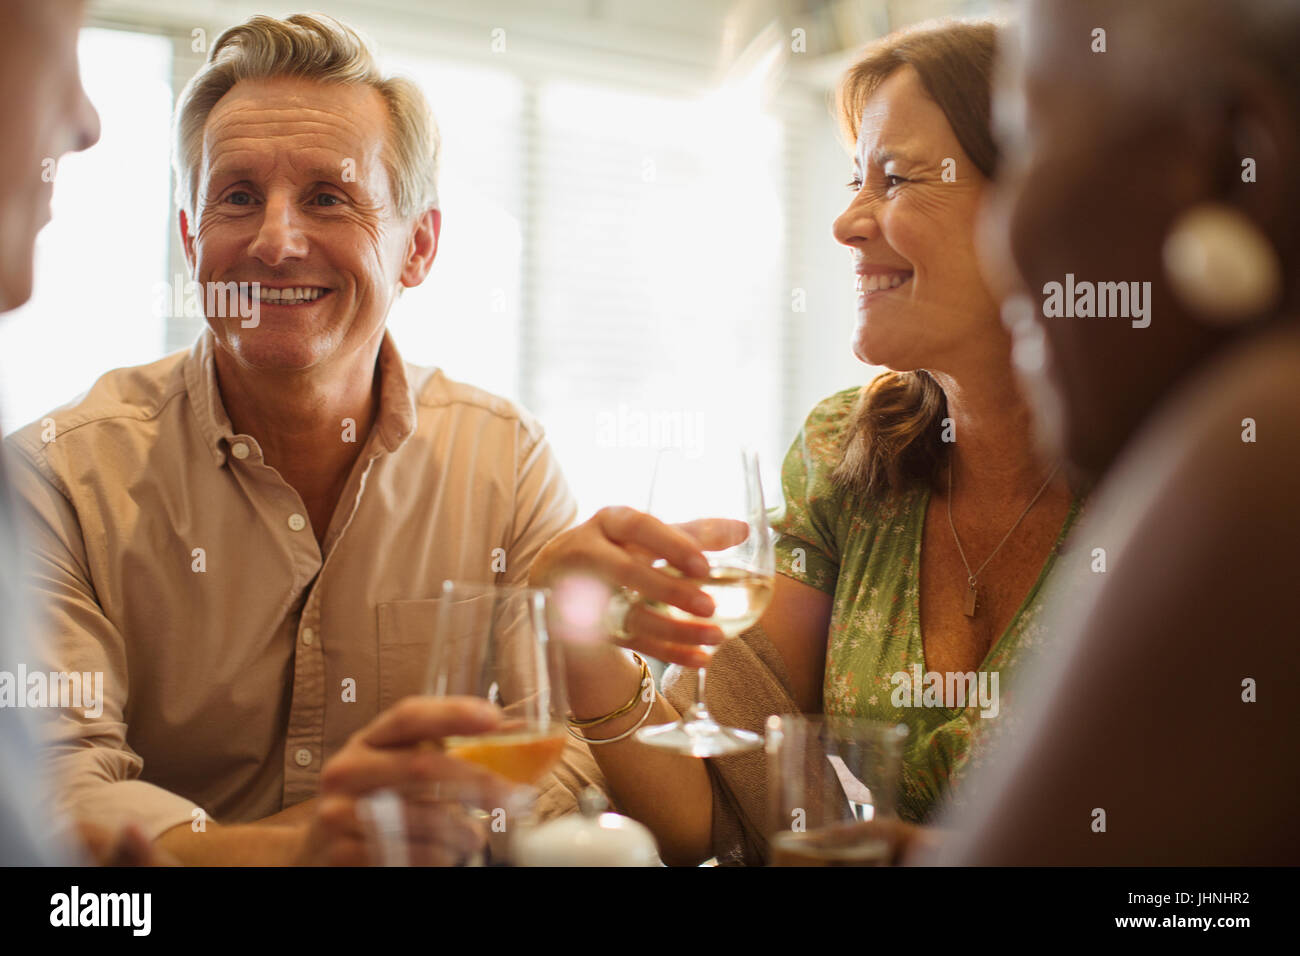 Laughing mature couple drinking wine at restaurant table - Stock Image